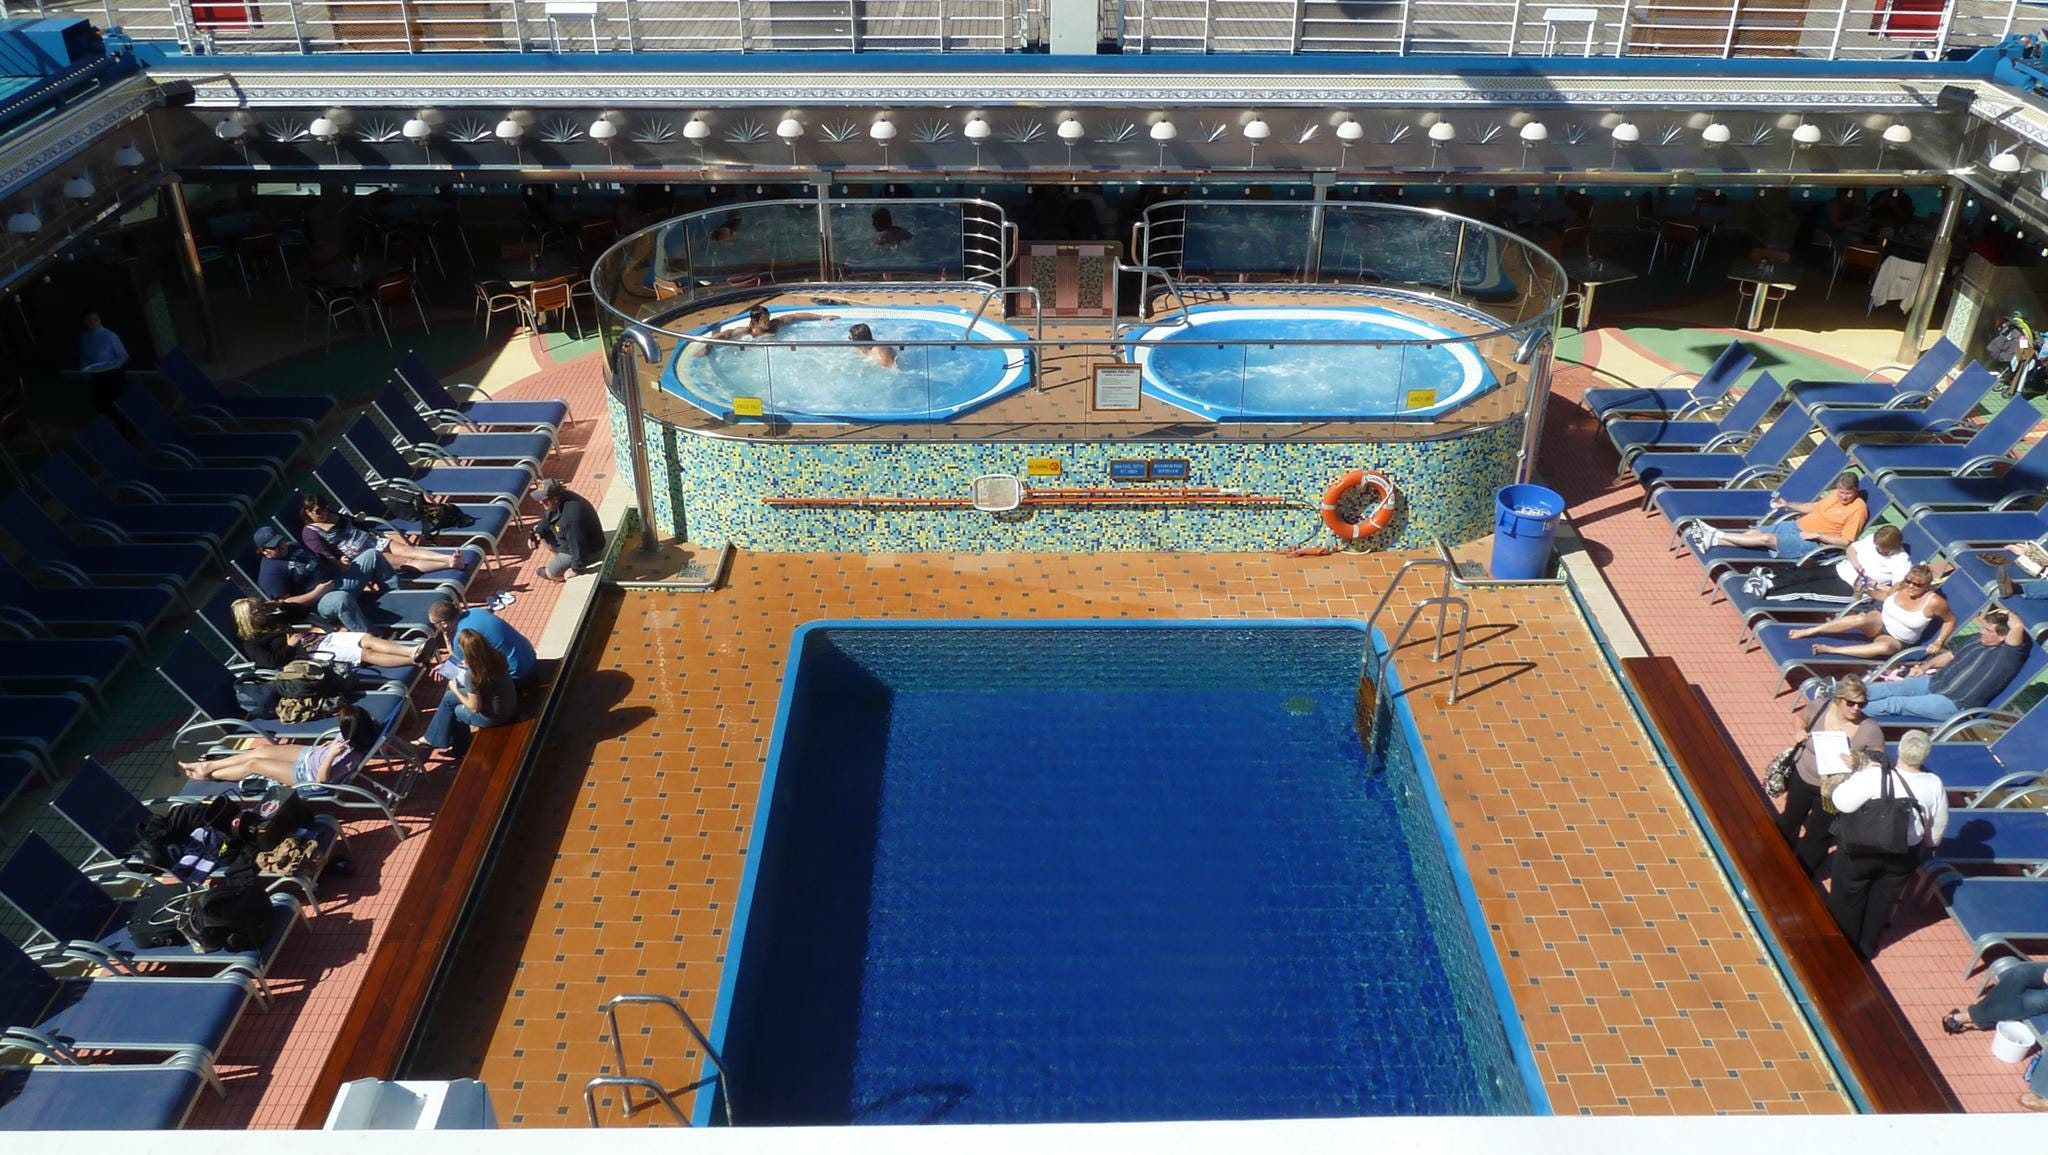 From aft Deck 11, there is a nice view over the all-weather, Magrodome-topped Prometheus pool.